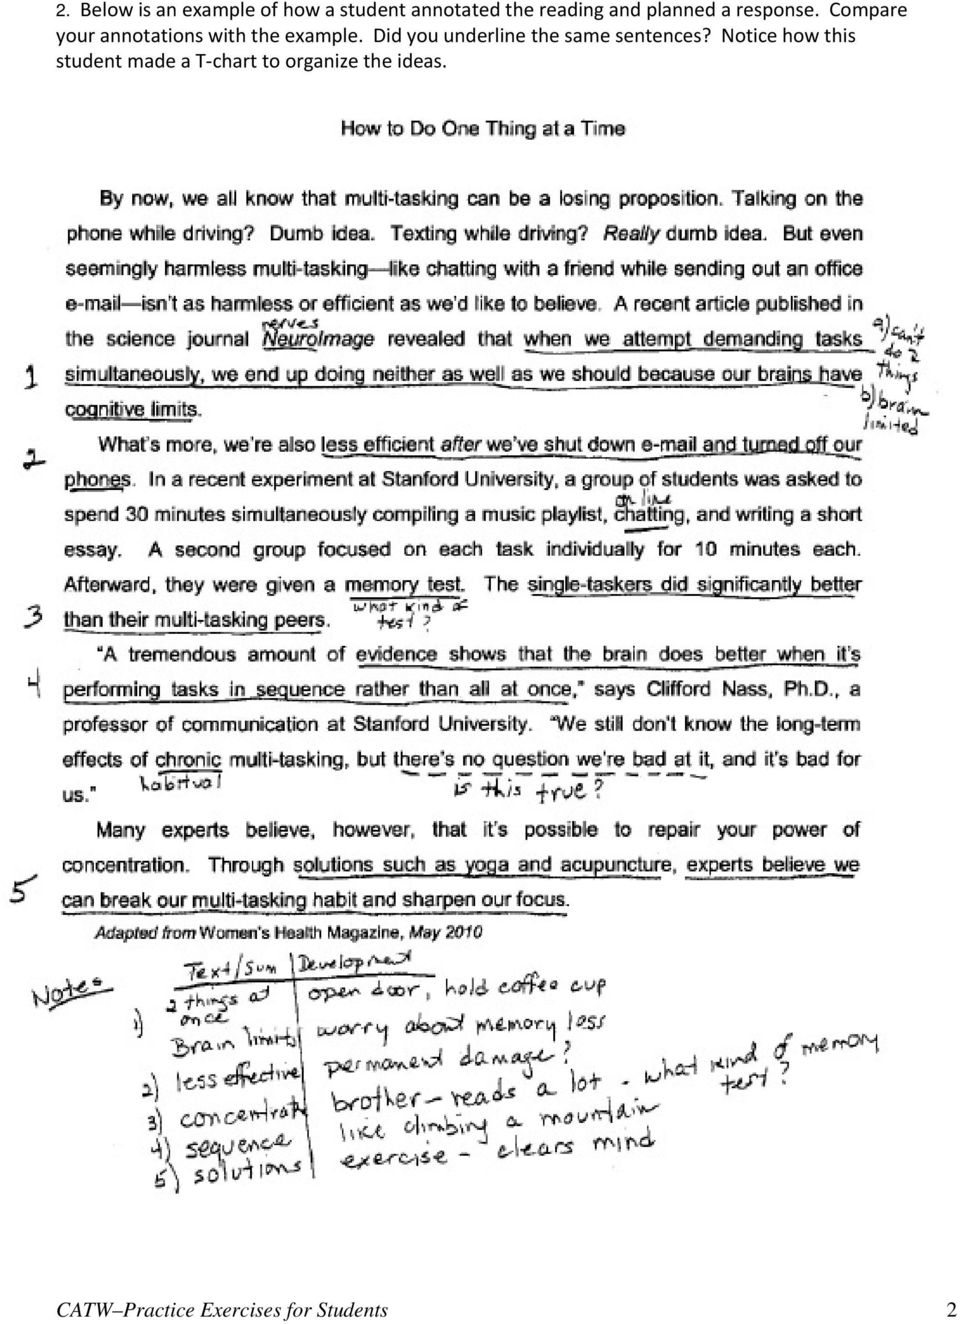 005 Medical Research Paper Topics Page 3 Stupendous Best Ethics For High School Students Full